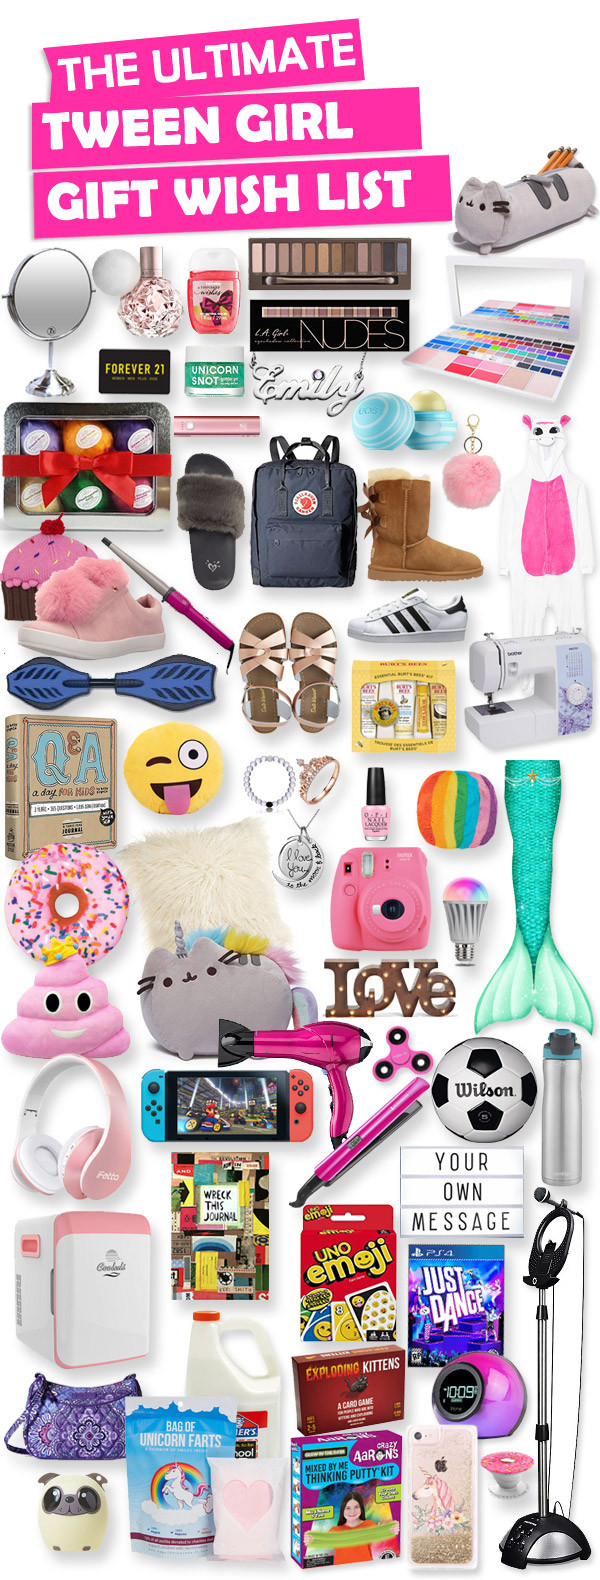 Best ideas about Tween Gift Ideas Girls . Save or Pin Gifts For Tween Girls Now.